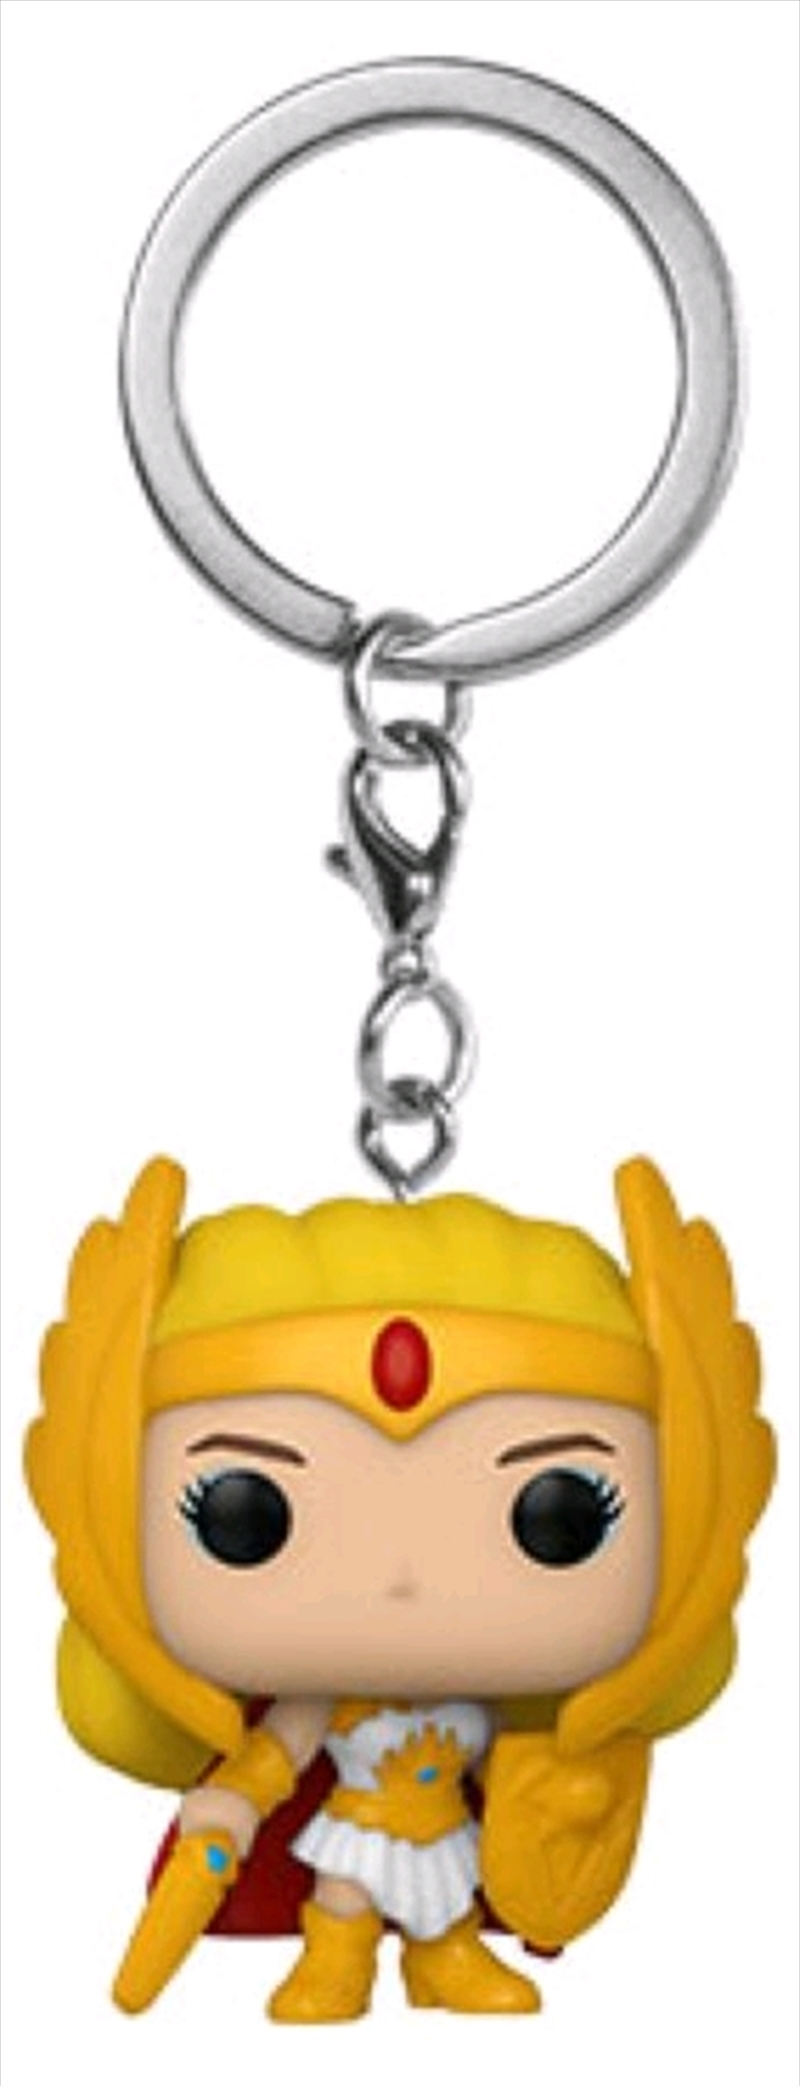 Masters of the Universe - She-Ra Classic Pocket Pop! Keychain | Pop Vinyl